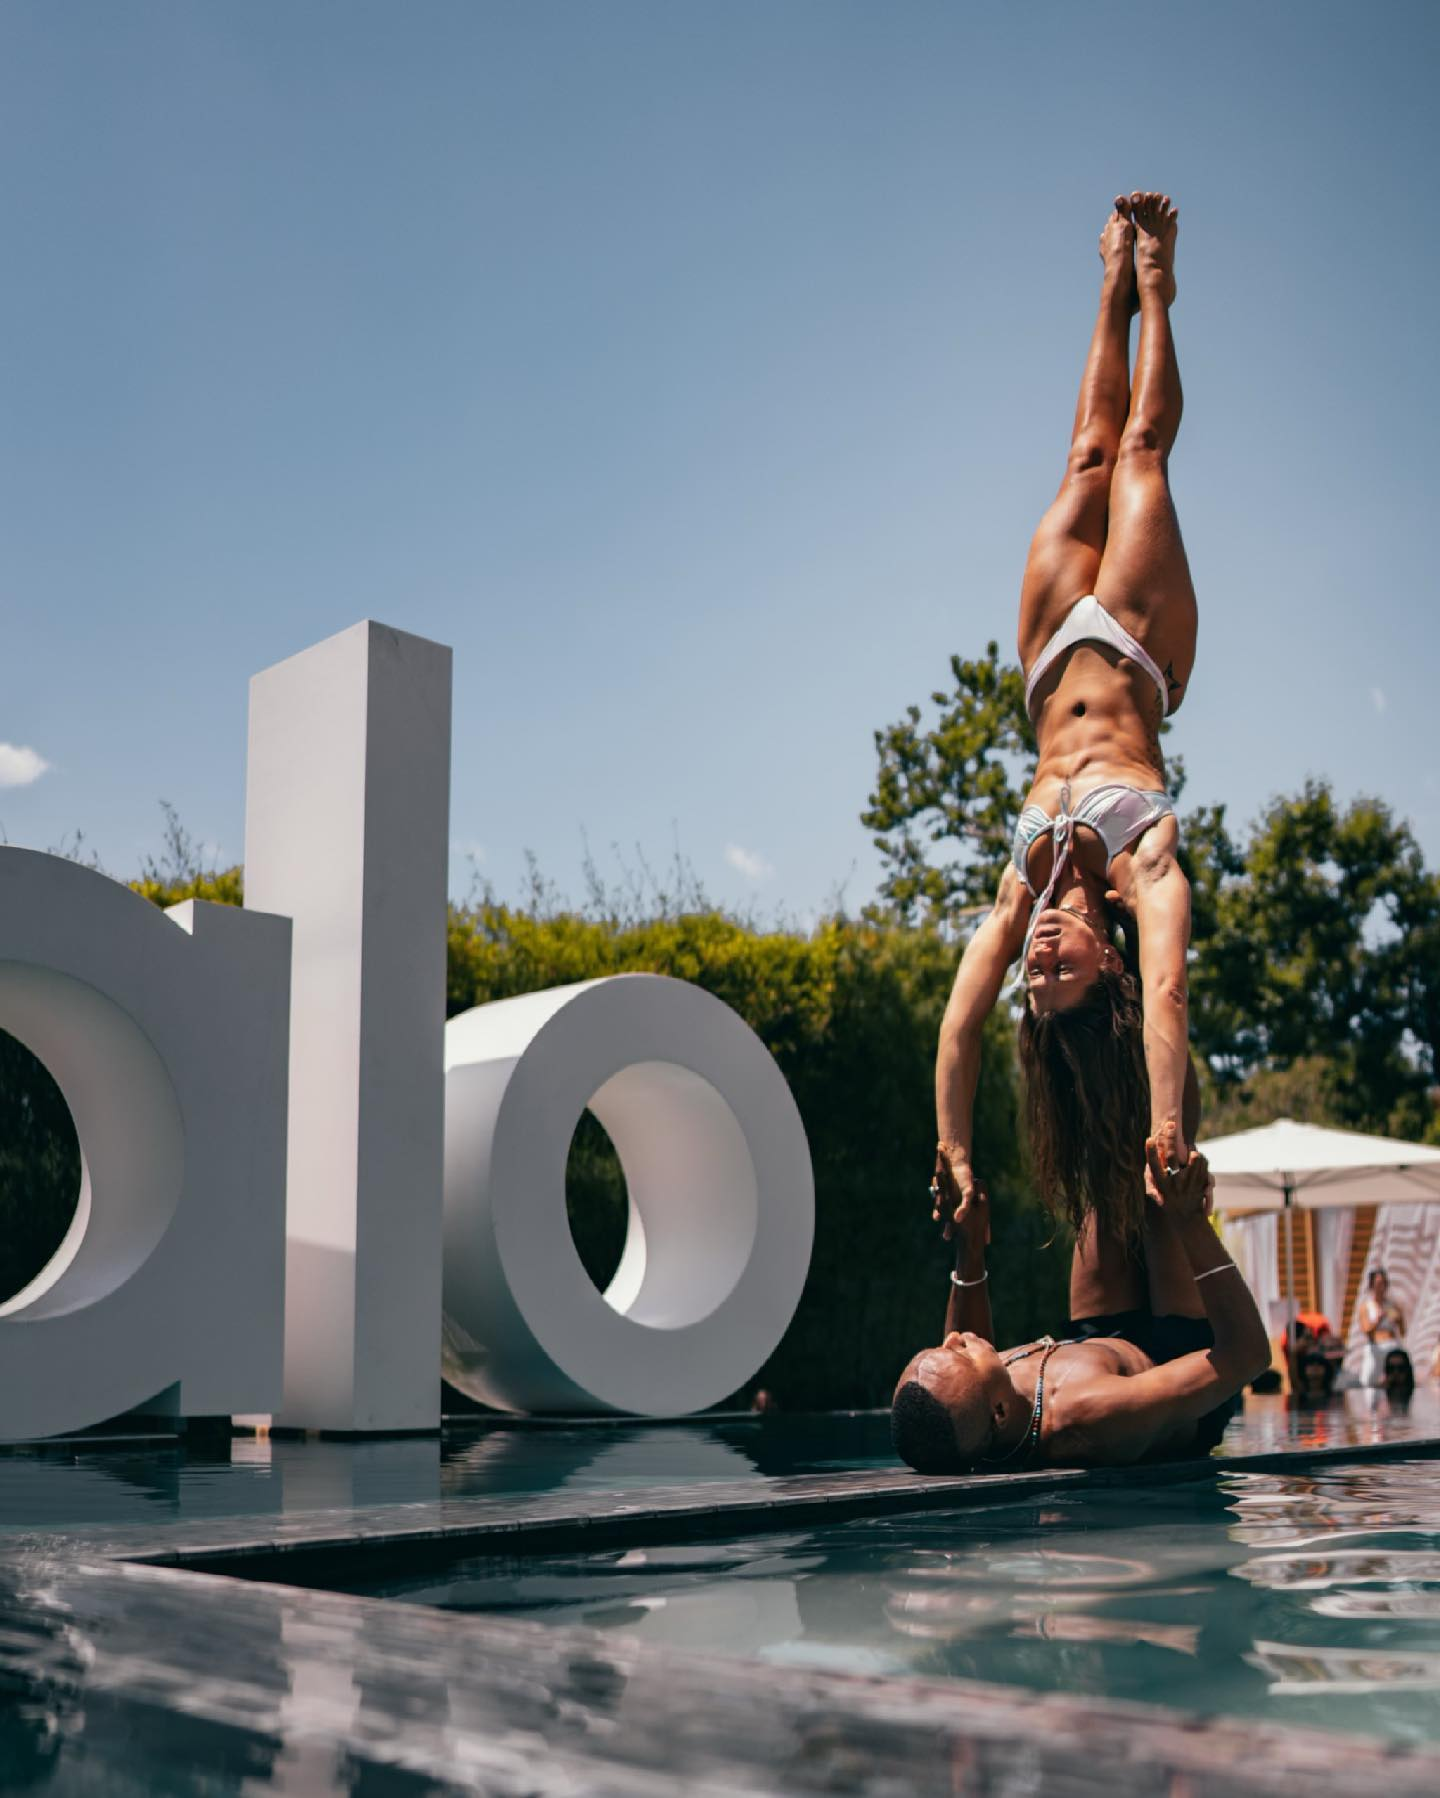 @rivkalov performing acro yoga with @andrewsealy7 at the Alo House pool.